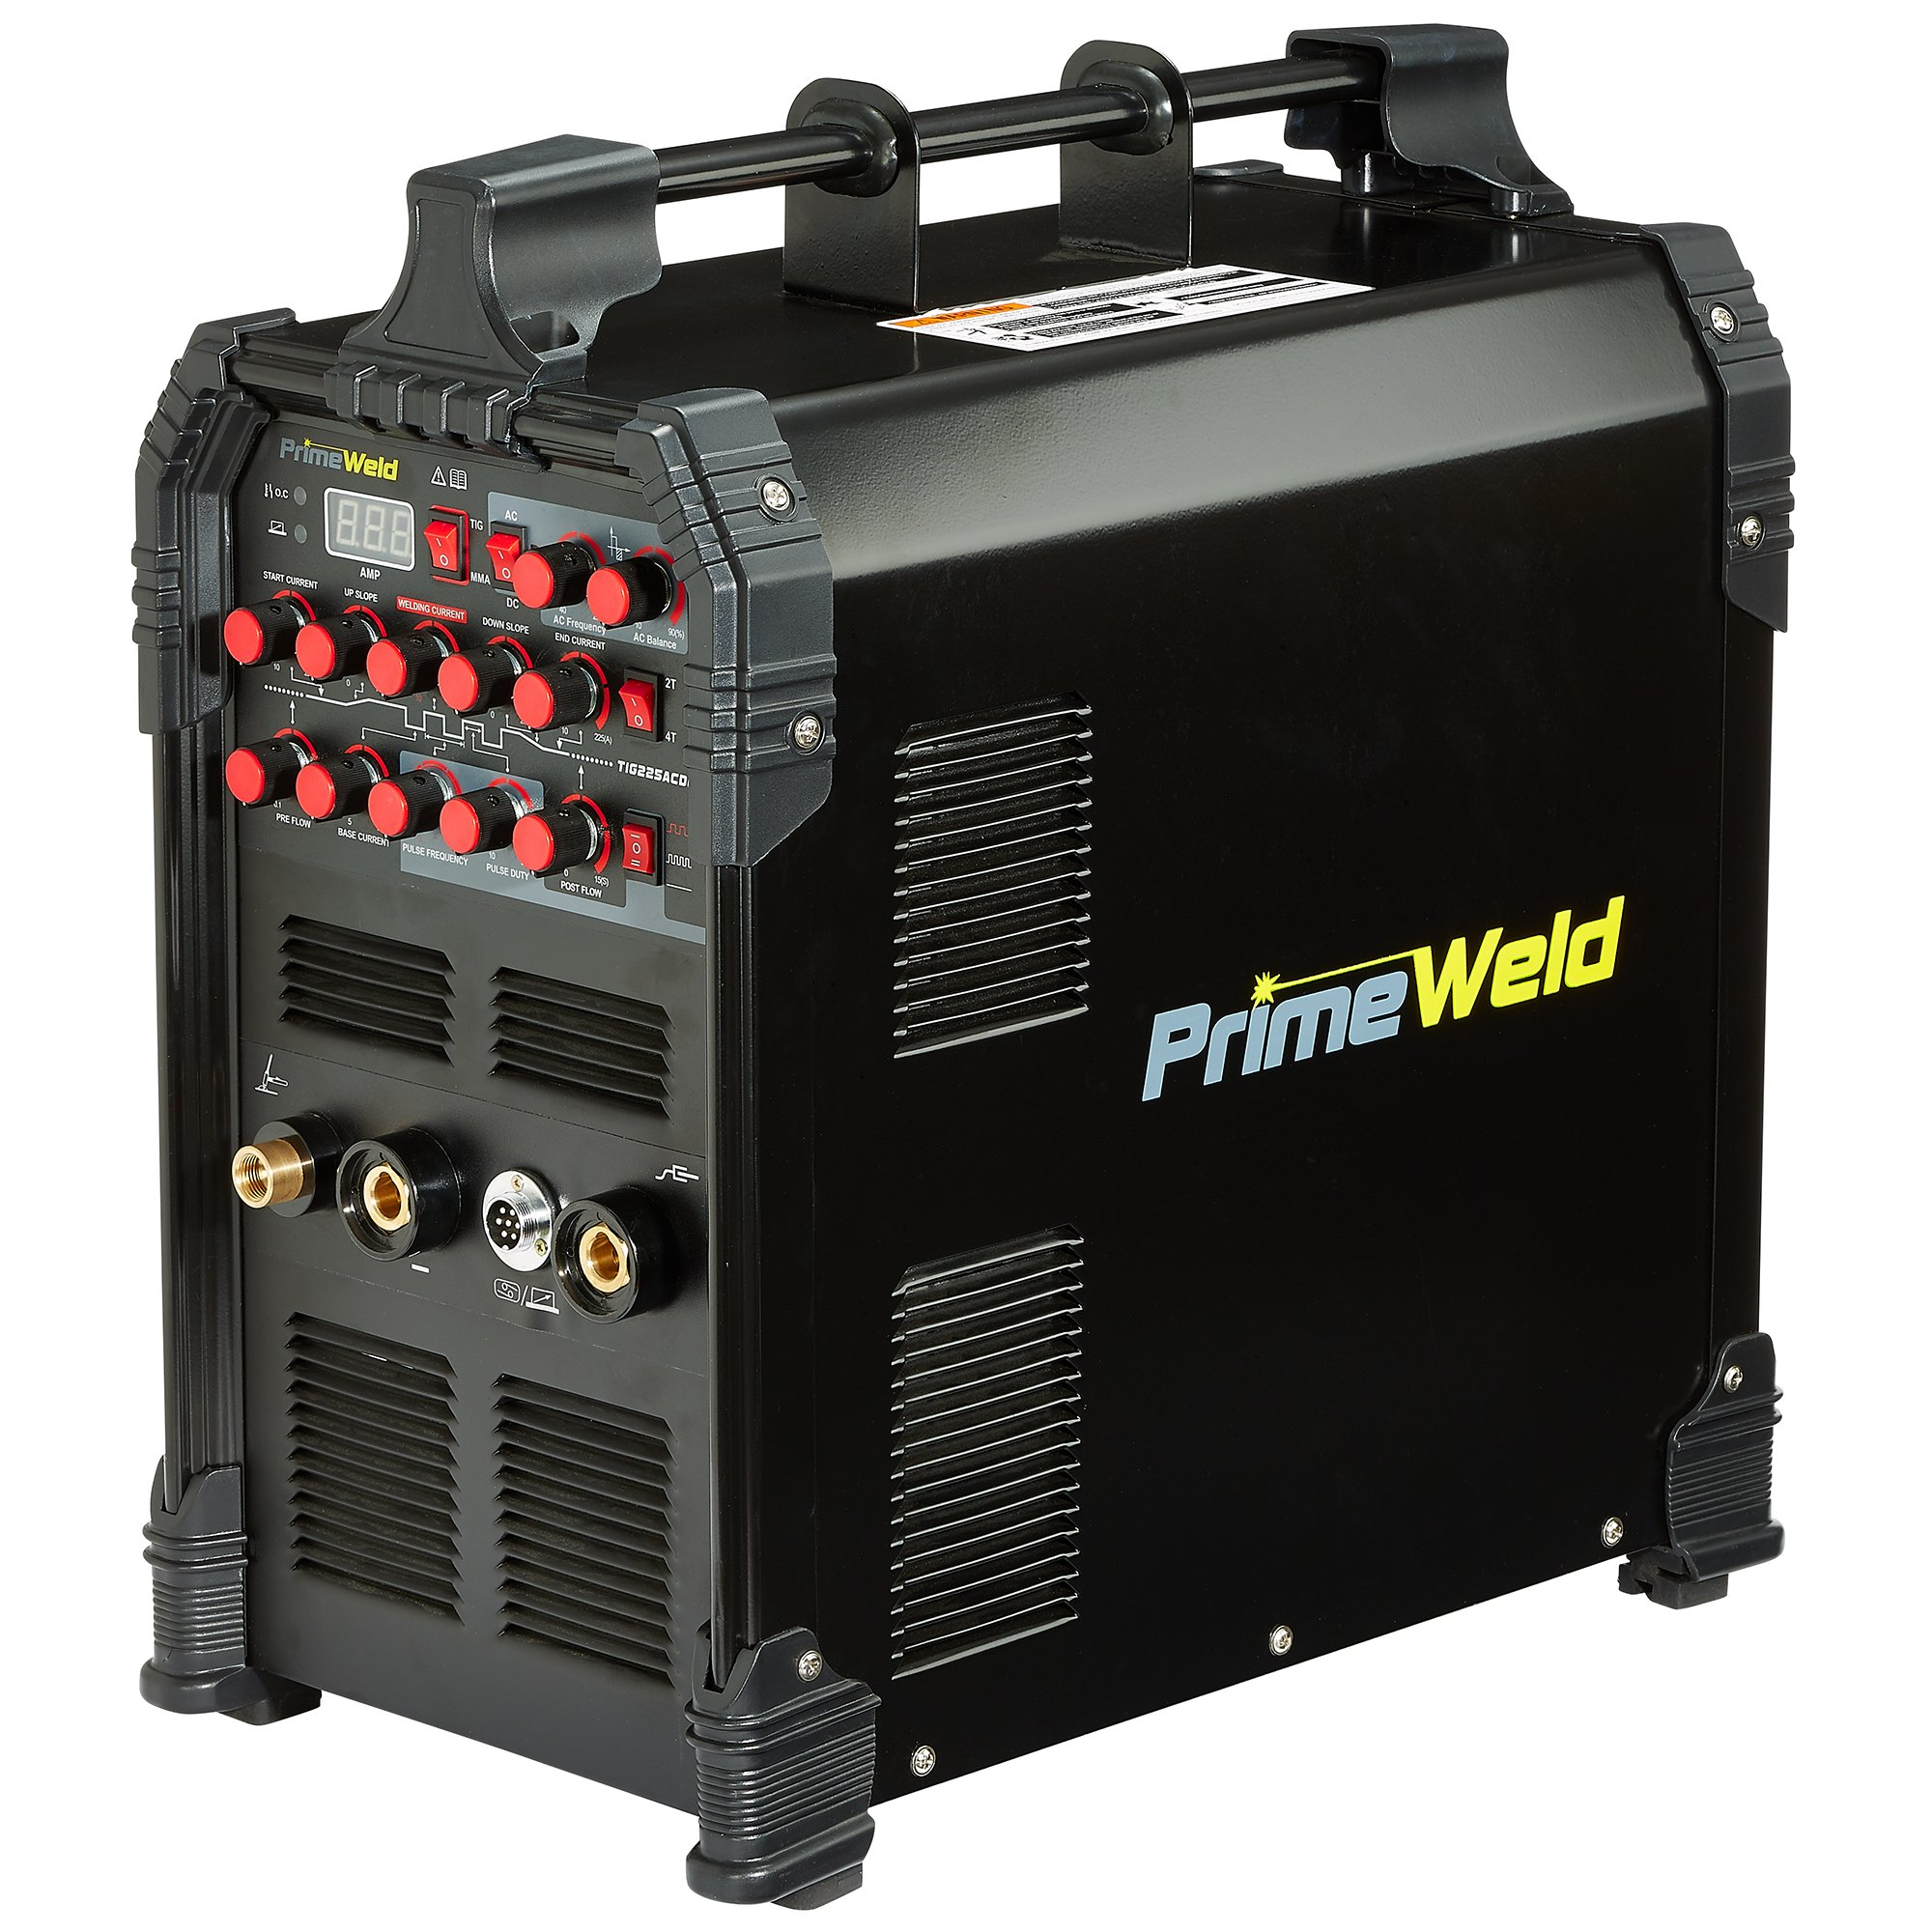 PRIMEWELD TIG225X 225 Amp IGBT AC DC Tig/Stick Welder with Pulse CK17 Flex Torch and Cable 3 Year Warranty by PRIMEWELD (Image #1)